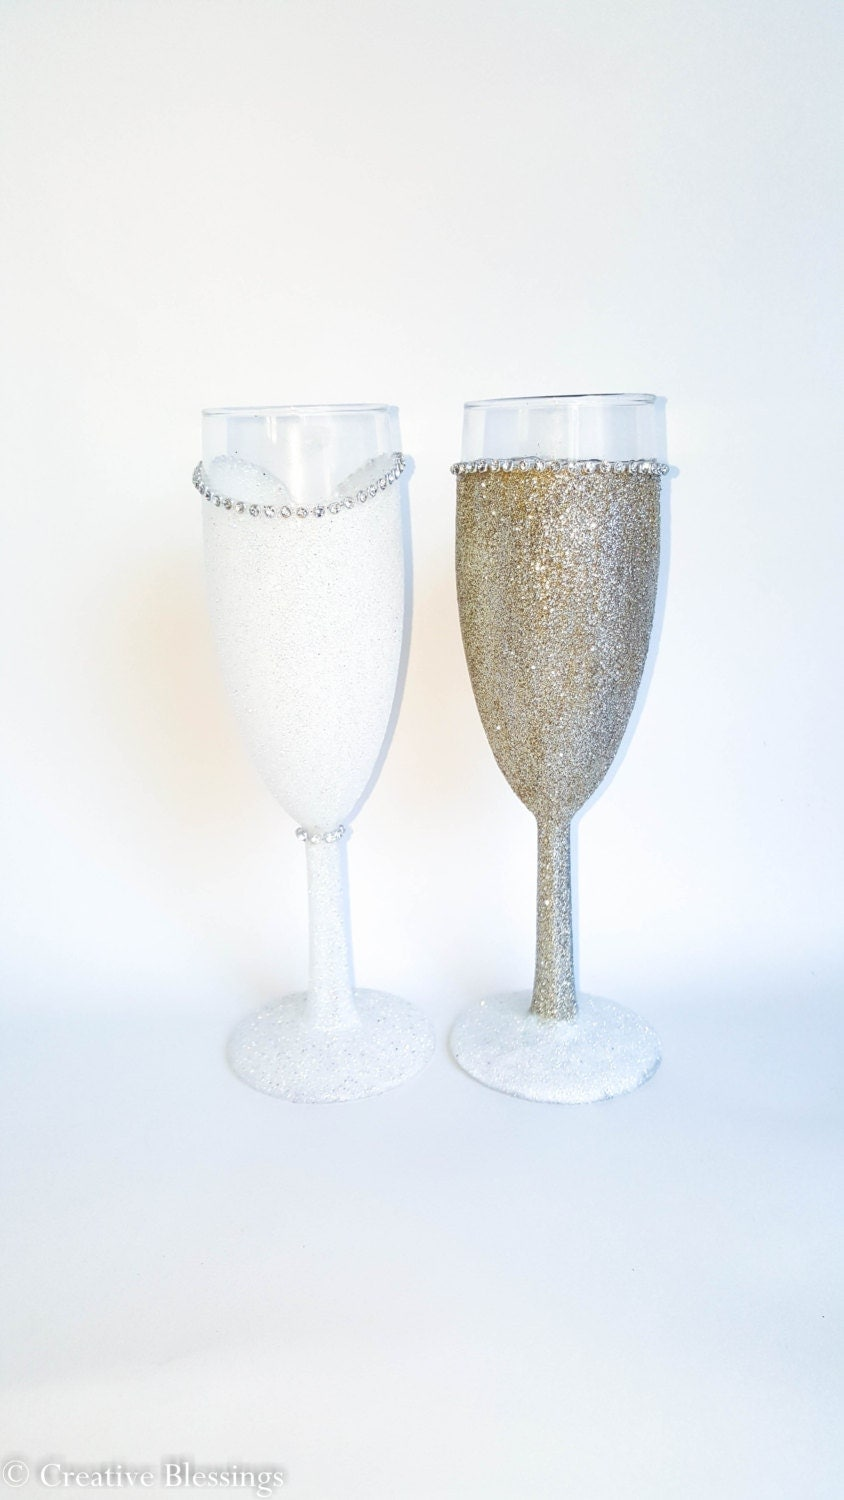 Wedding Present Champagne Glasses : Wedding Toasting Flutes, Anniversary Gift, His and Hers Champagne ...